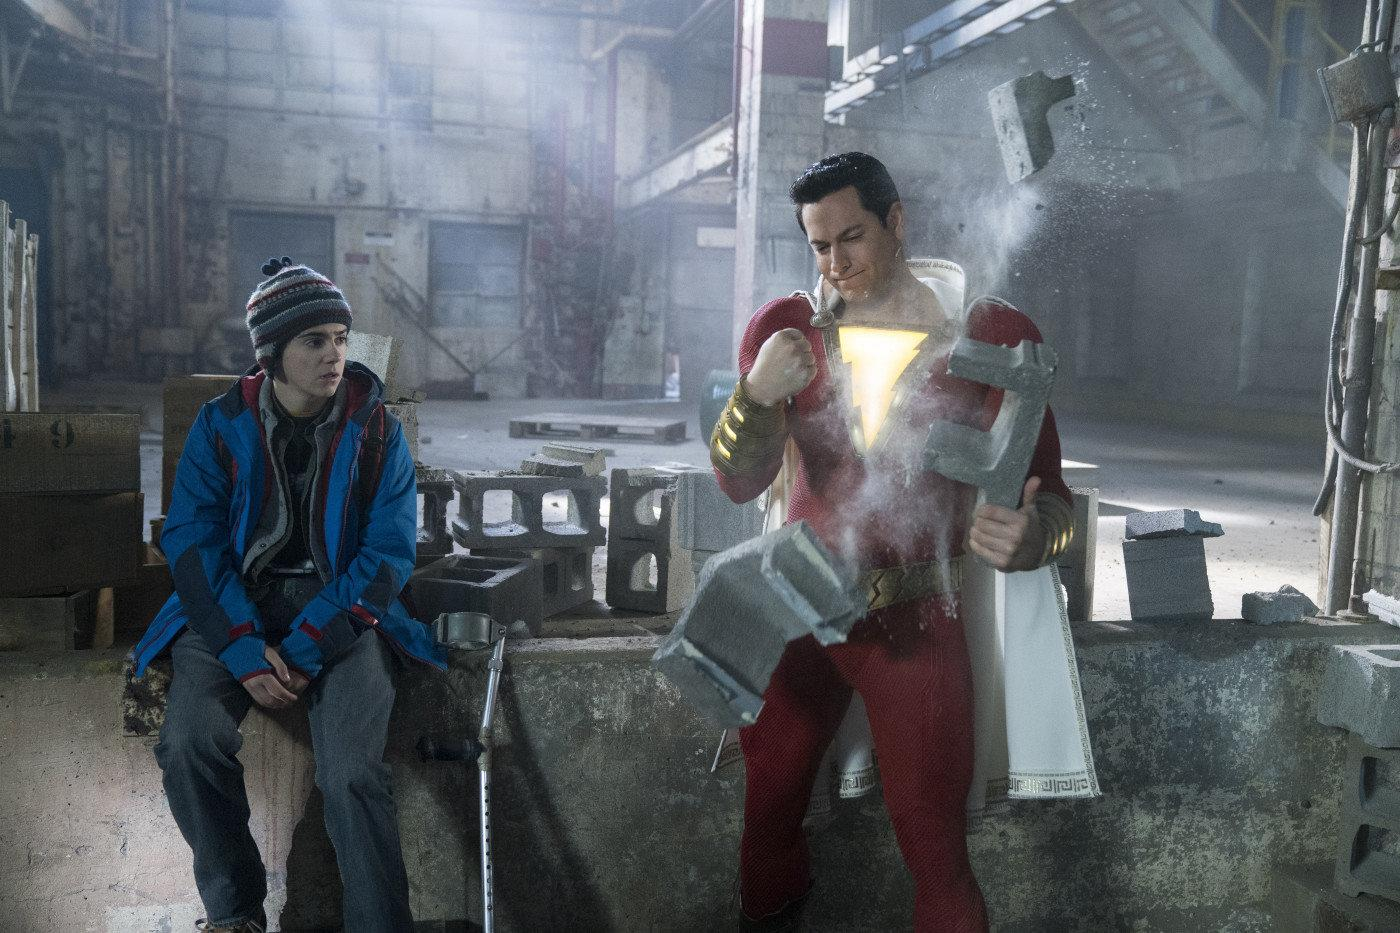 Shazam 2 is confirmed with a release date now set